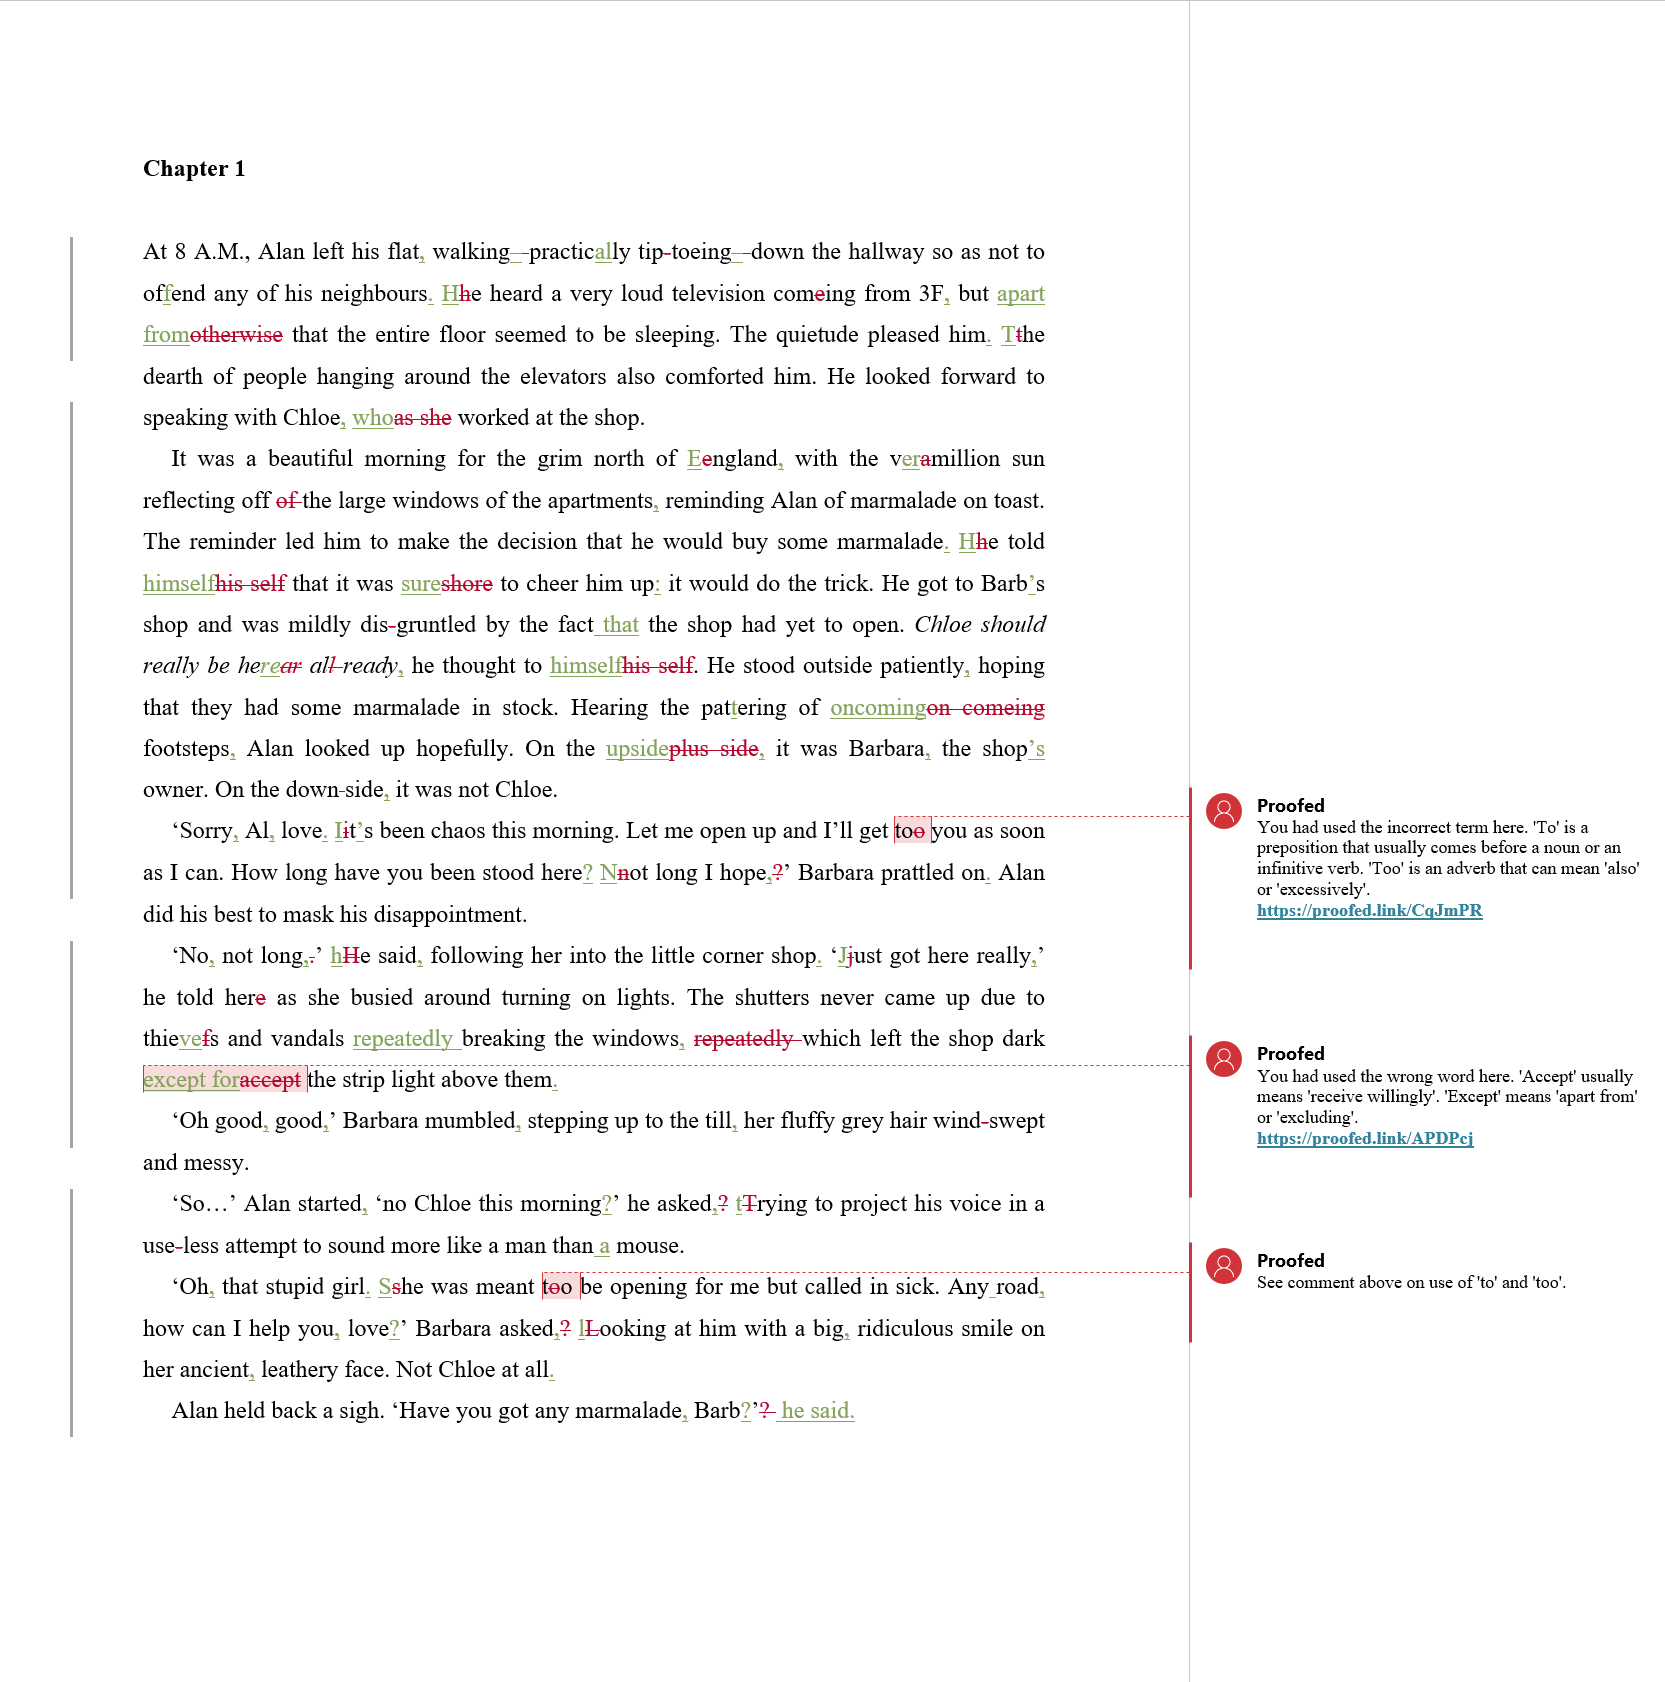 Author Proofreading Example (After Editing)